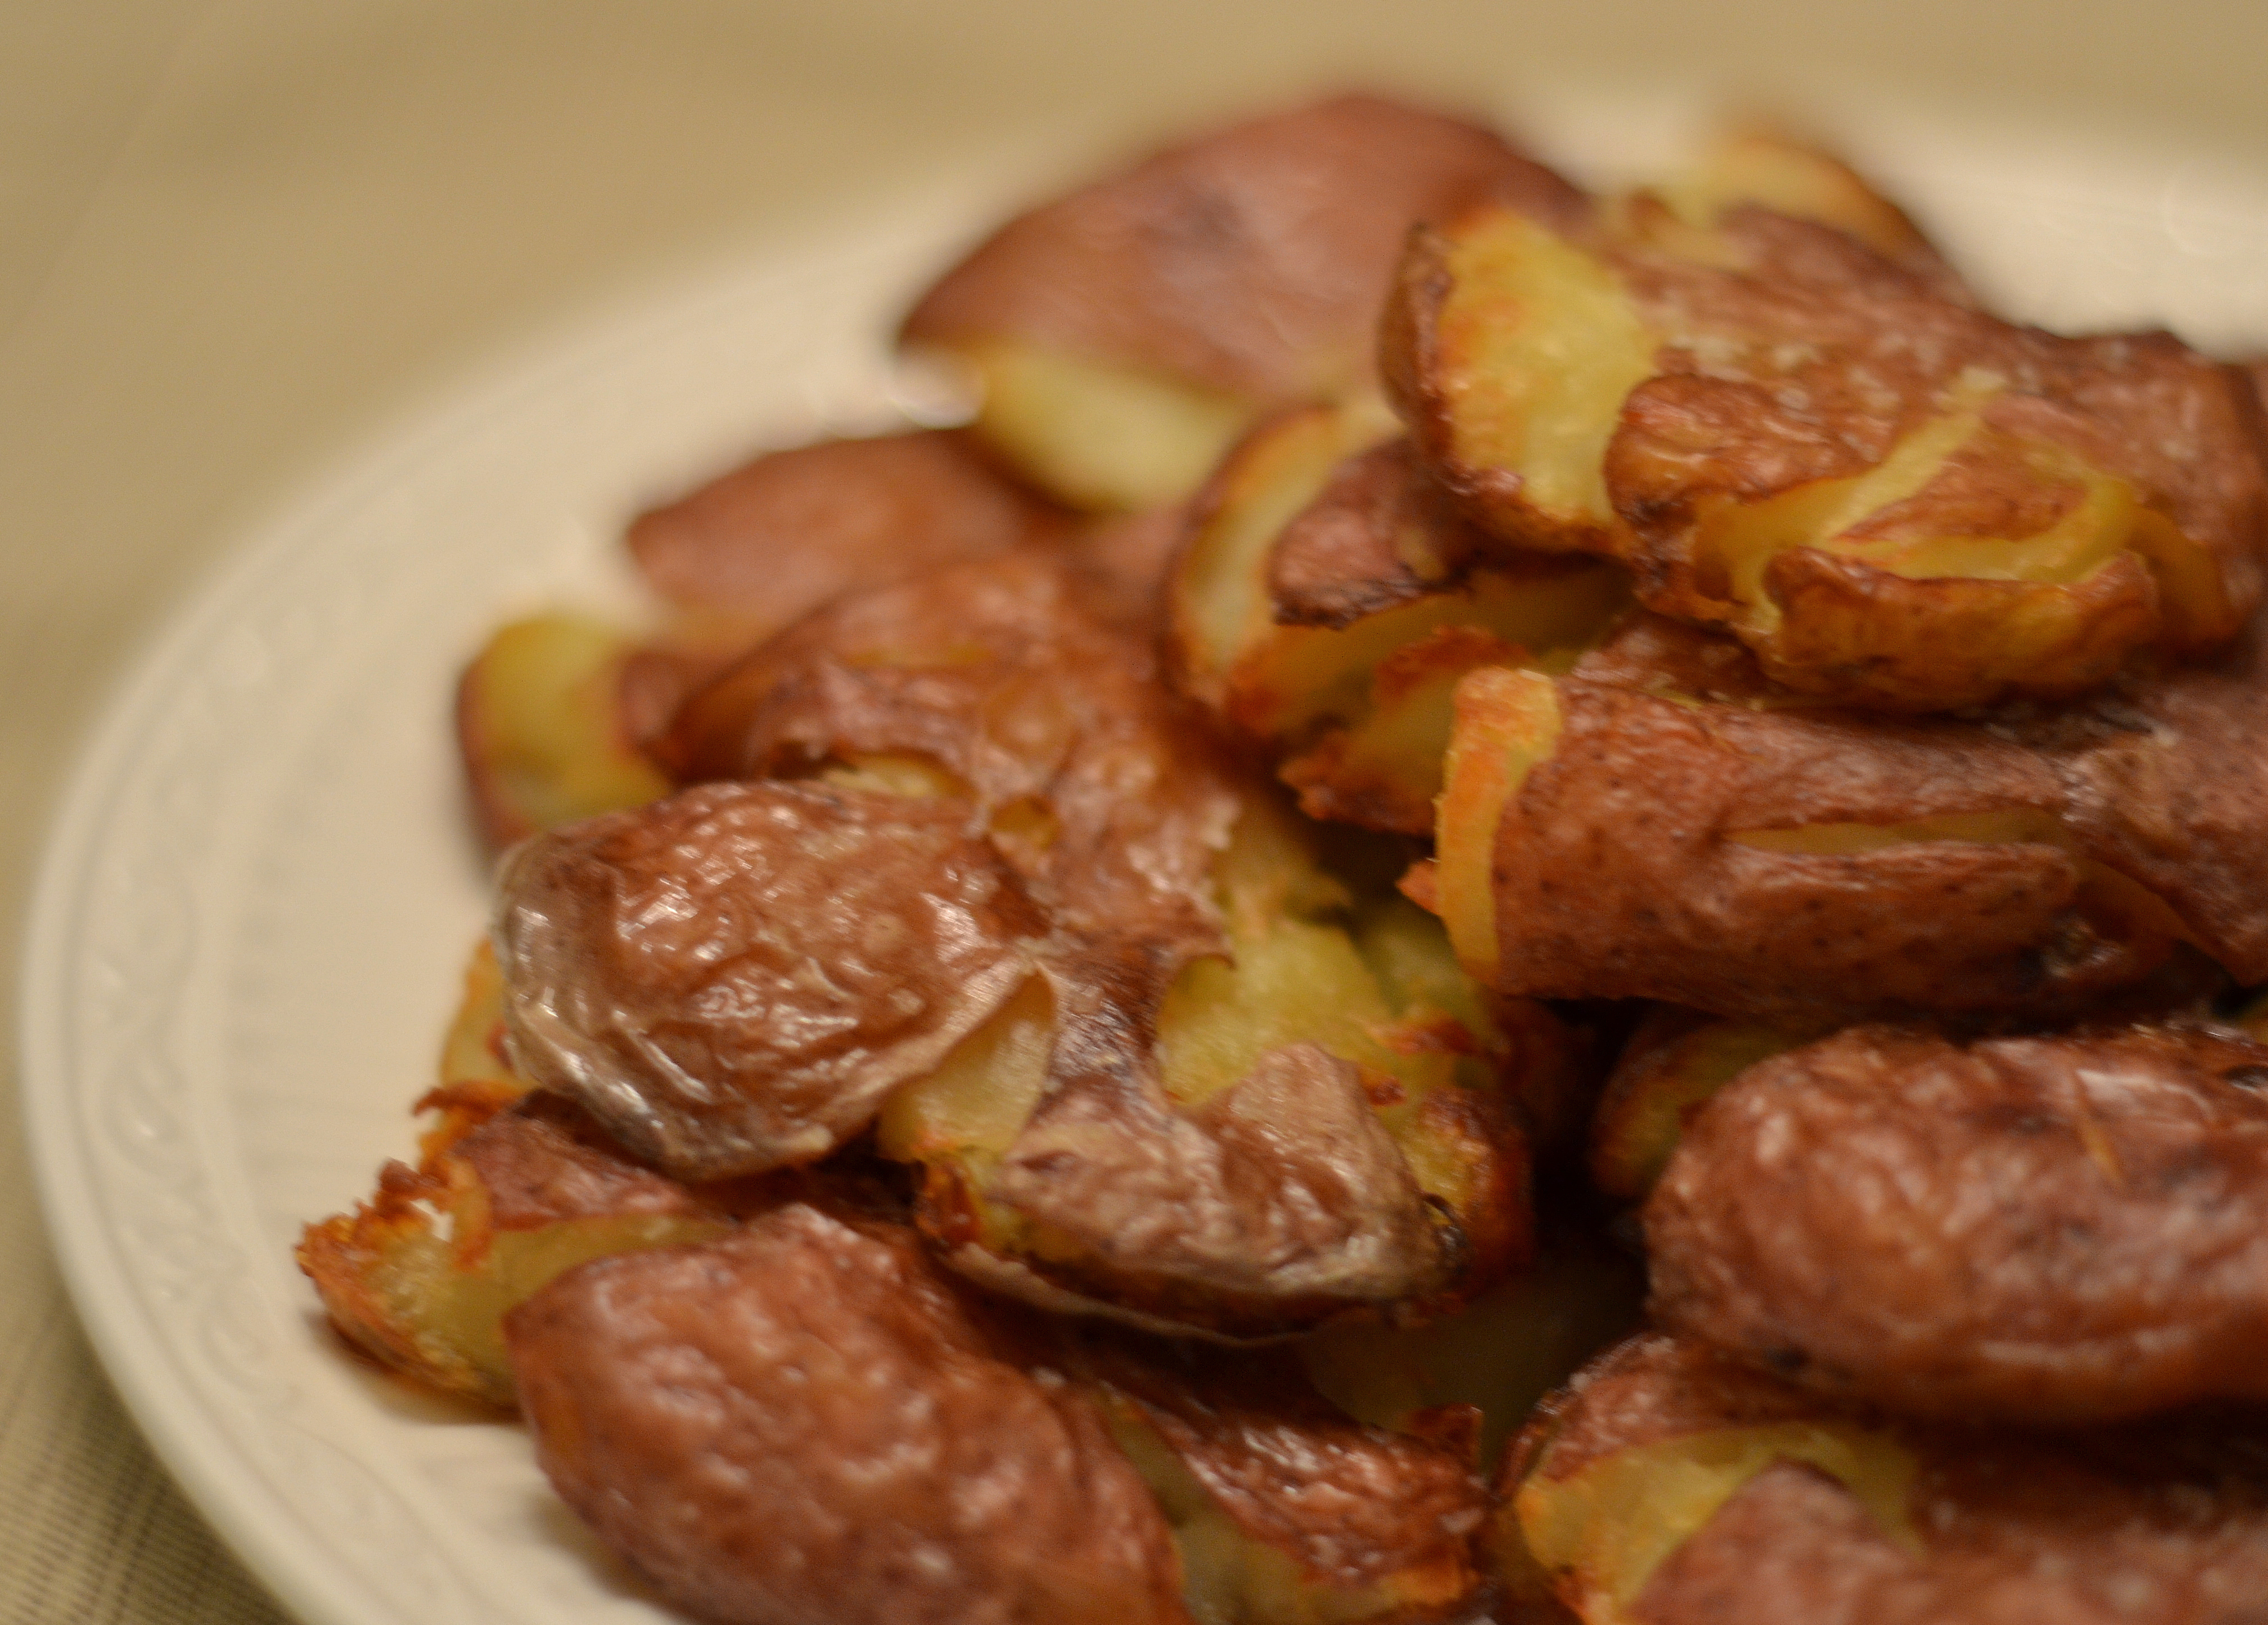 Crispy Smashed Roasted Potatoes - Chew Nibble NoshChew Nibble Nosh